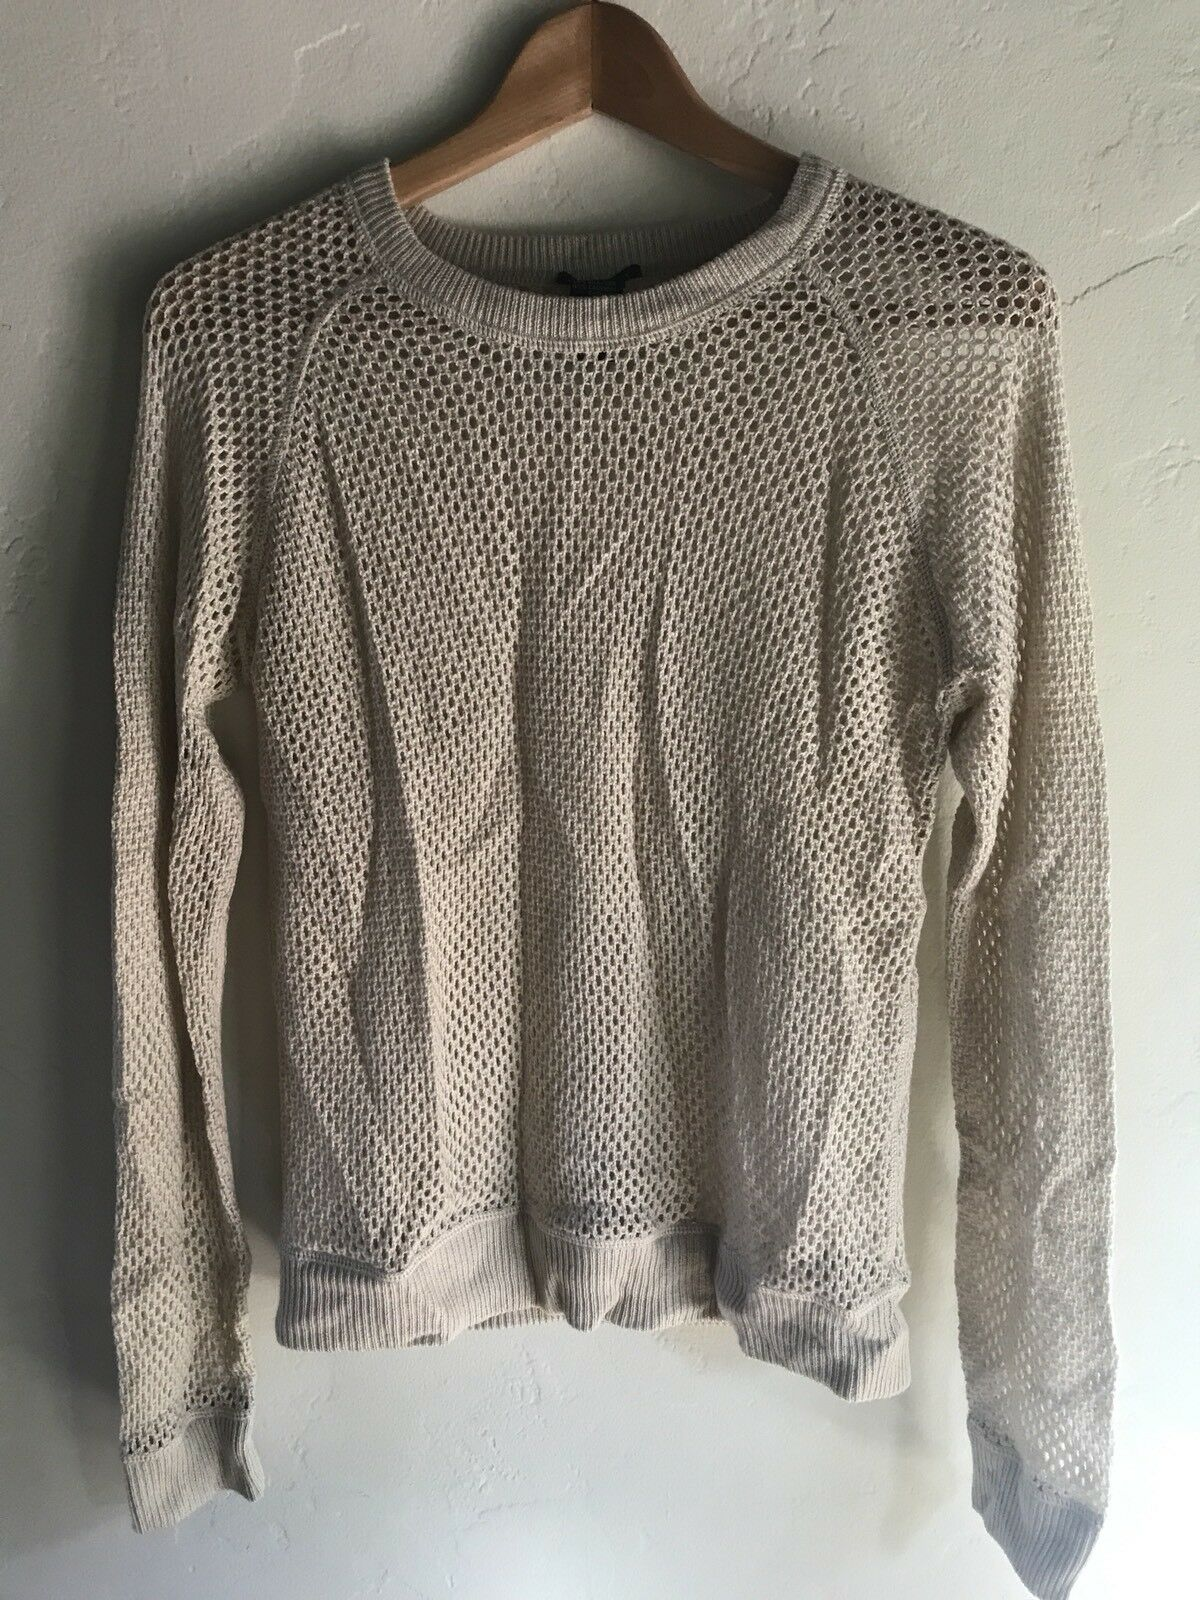 NEW  200 Theory Oatmeal Silk Cashmere Allie Mesh Knit Crewneck Sweater Medium